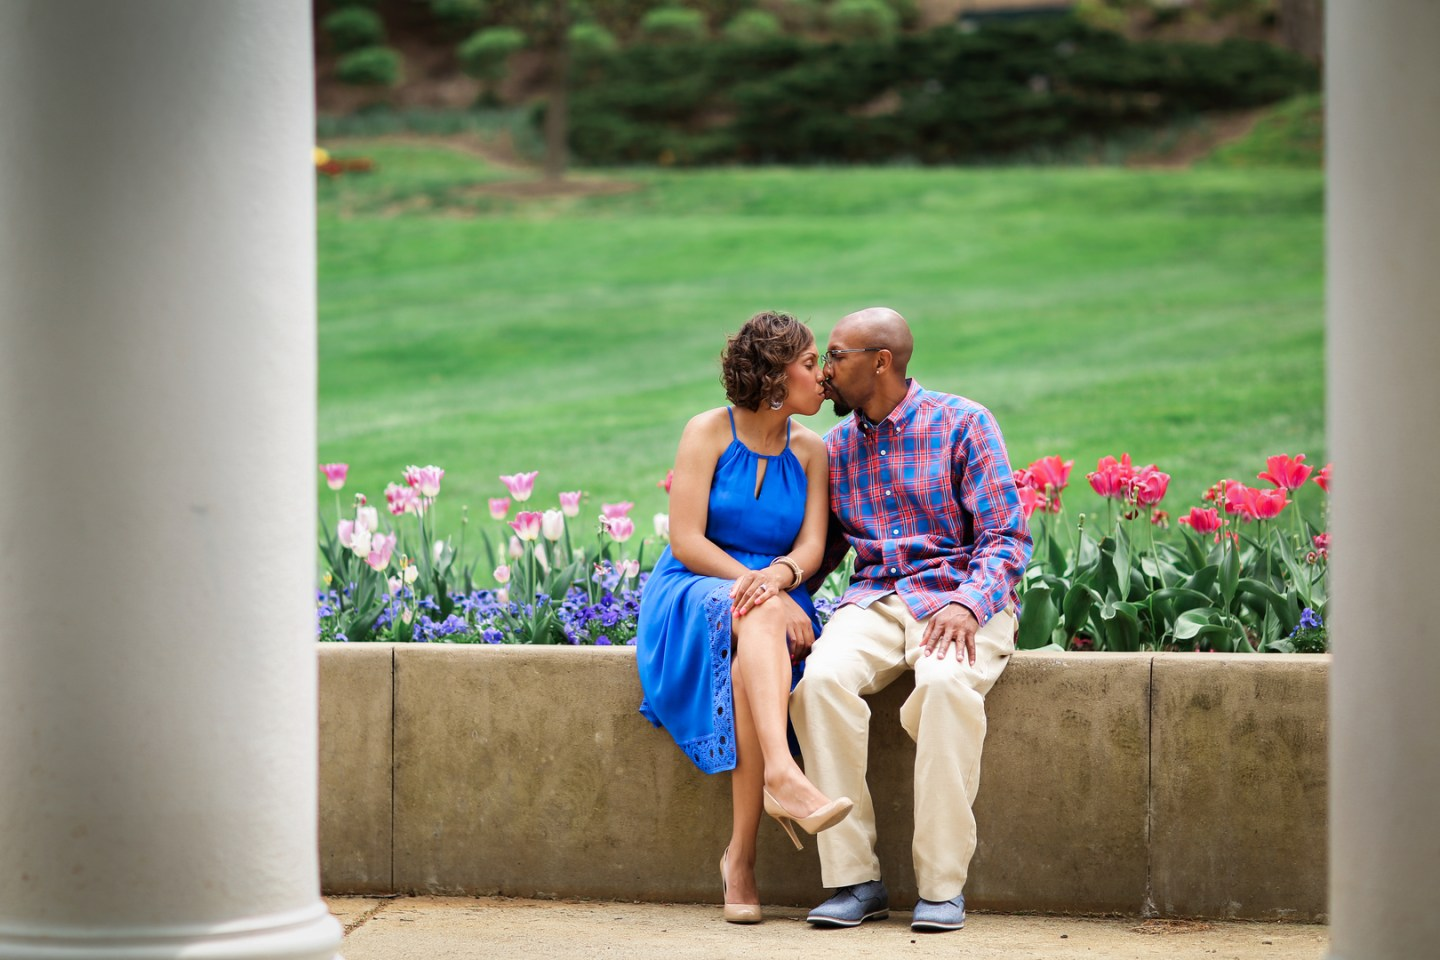 u80uny1c30hm9j393s26_big West Virginia Engagement Session at the Greenbriar Resort